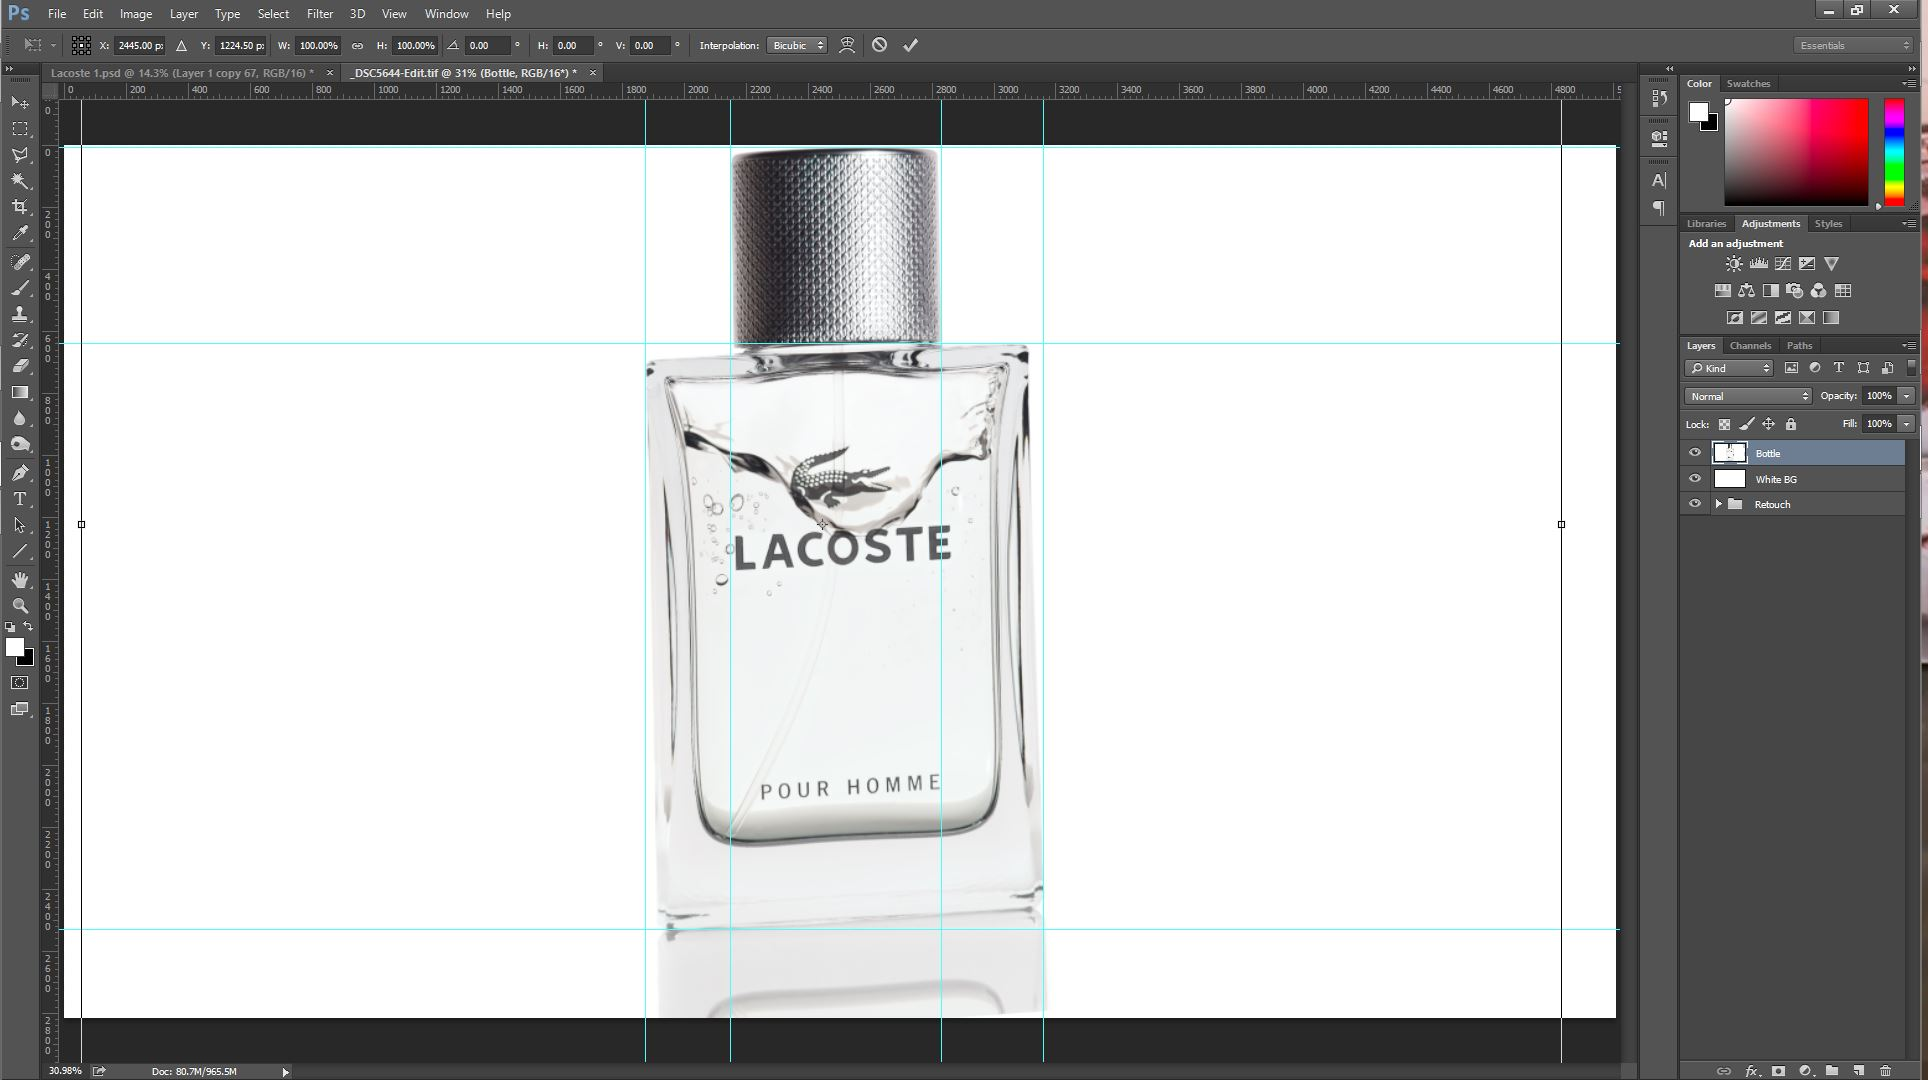 Lacoste_4_perspective